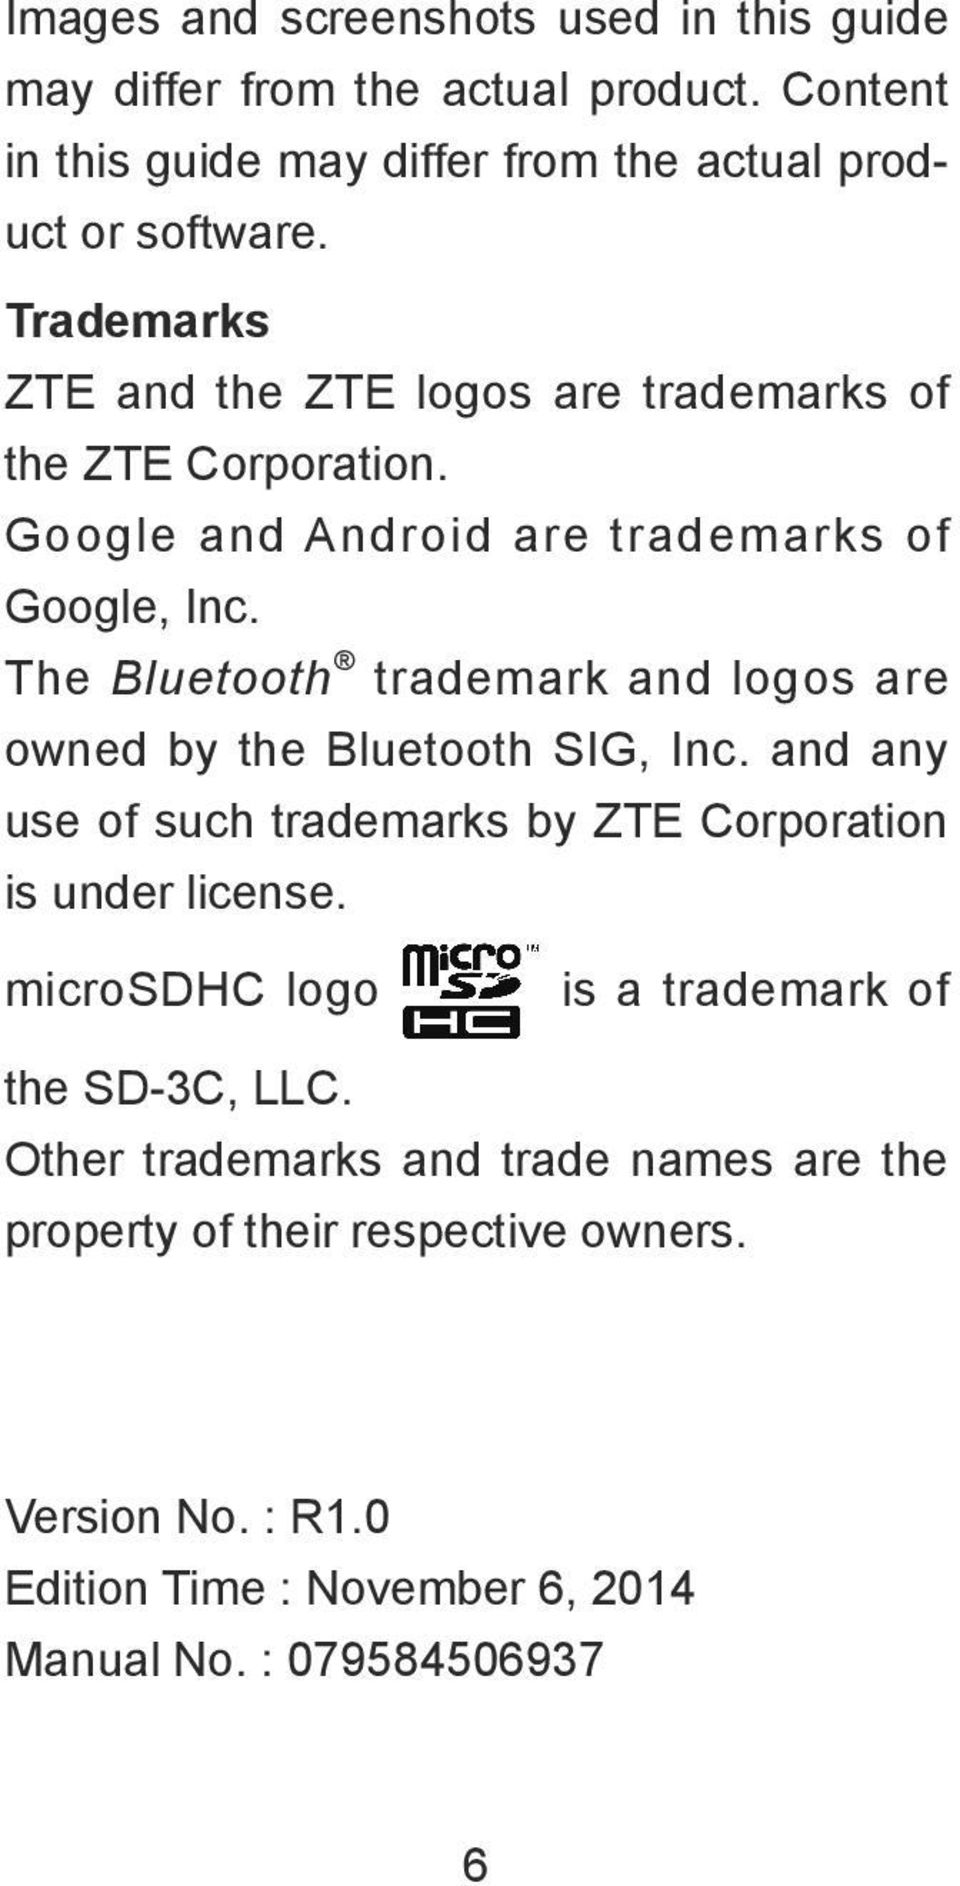 The Bluetooth trademark and logos are owned by the Bluetooth SIG, Inc. and any use of such trademarks by ZTE Corporation is under license.